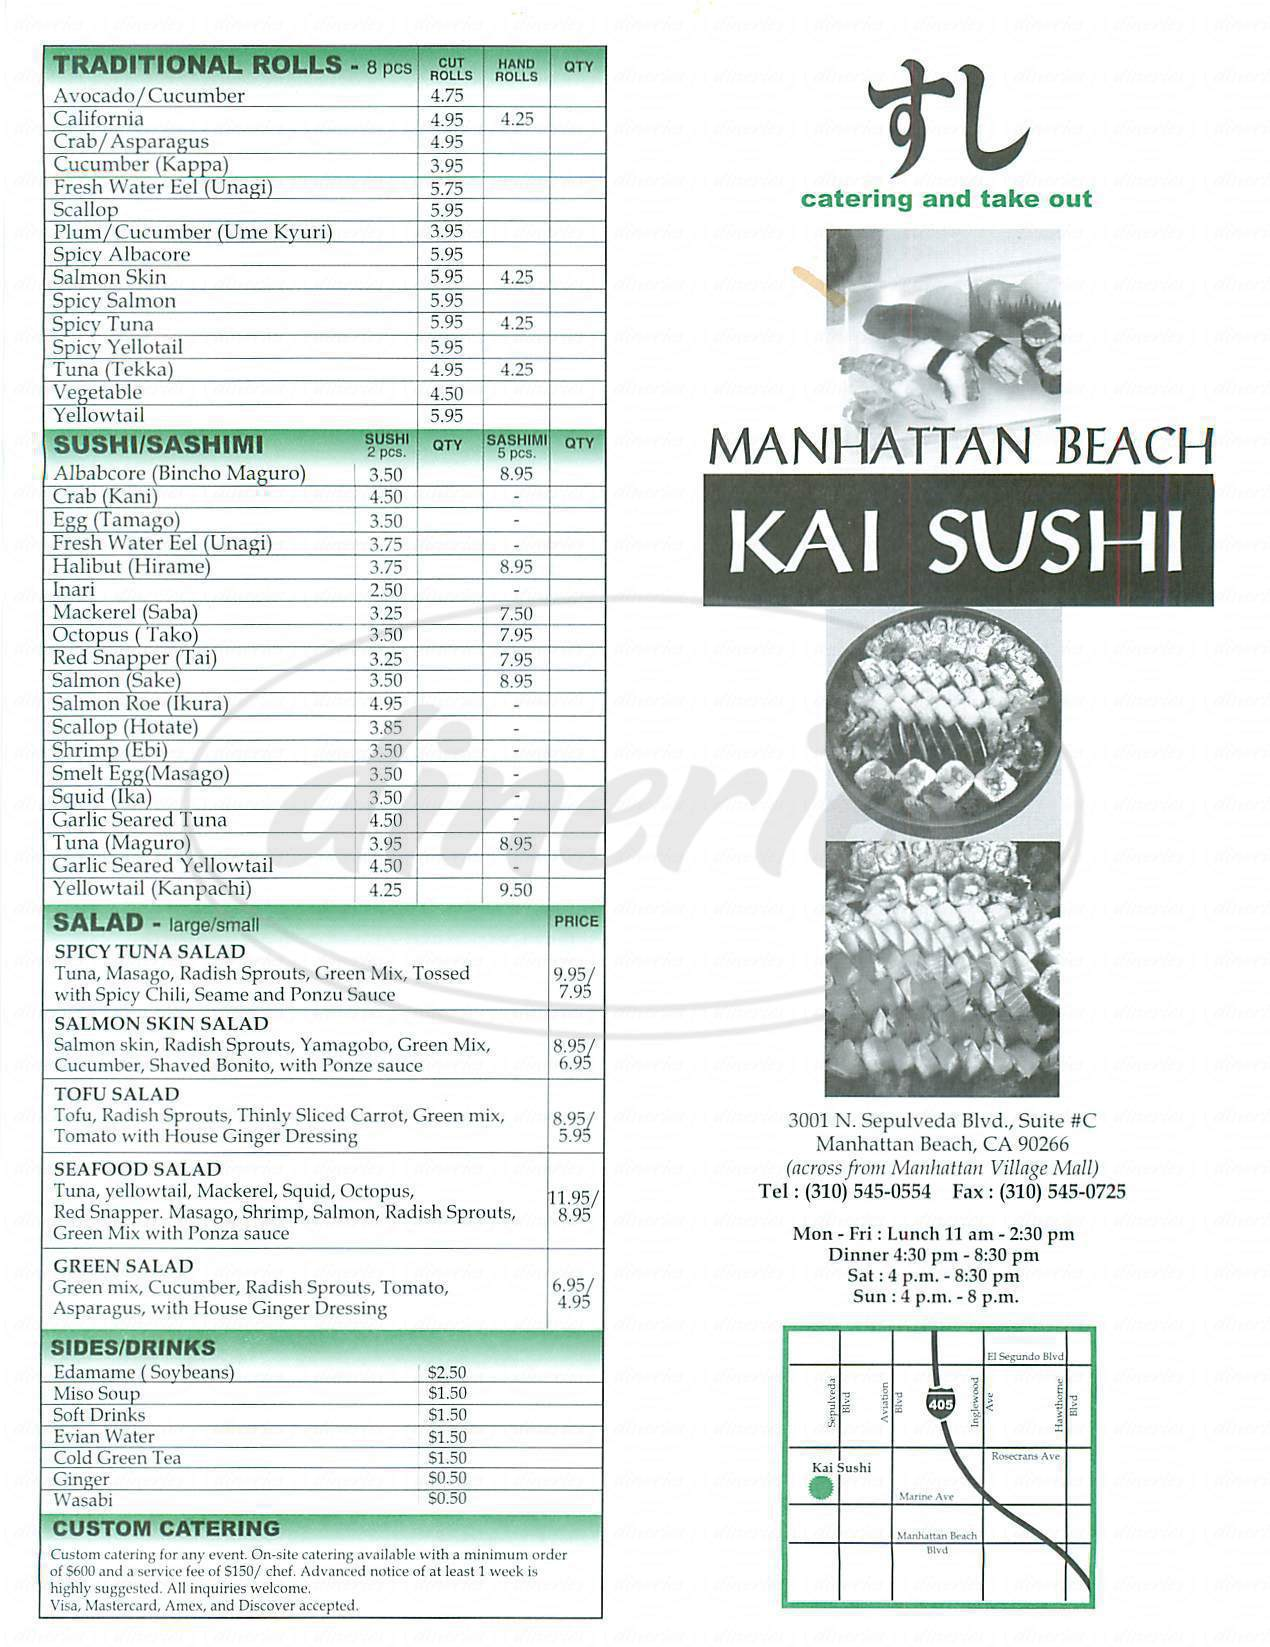 menu for Kai Sushi Manhattan